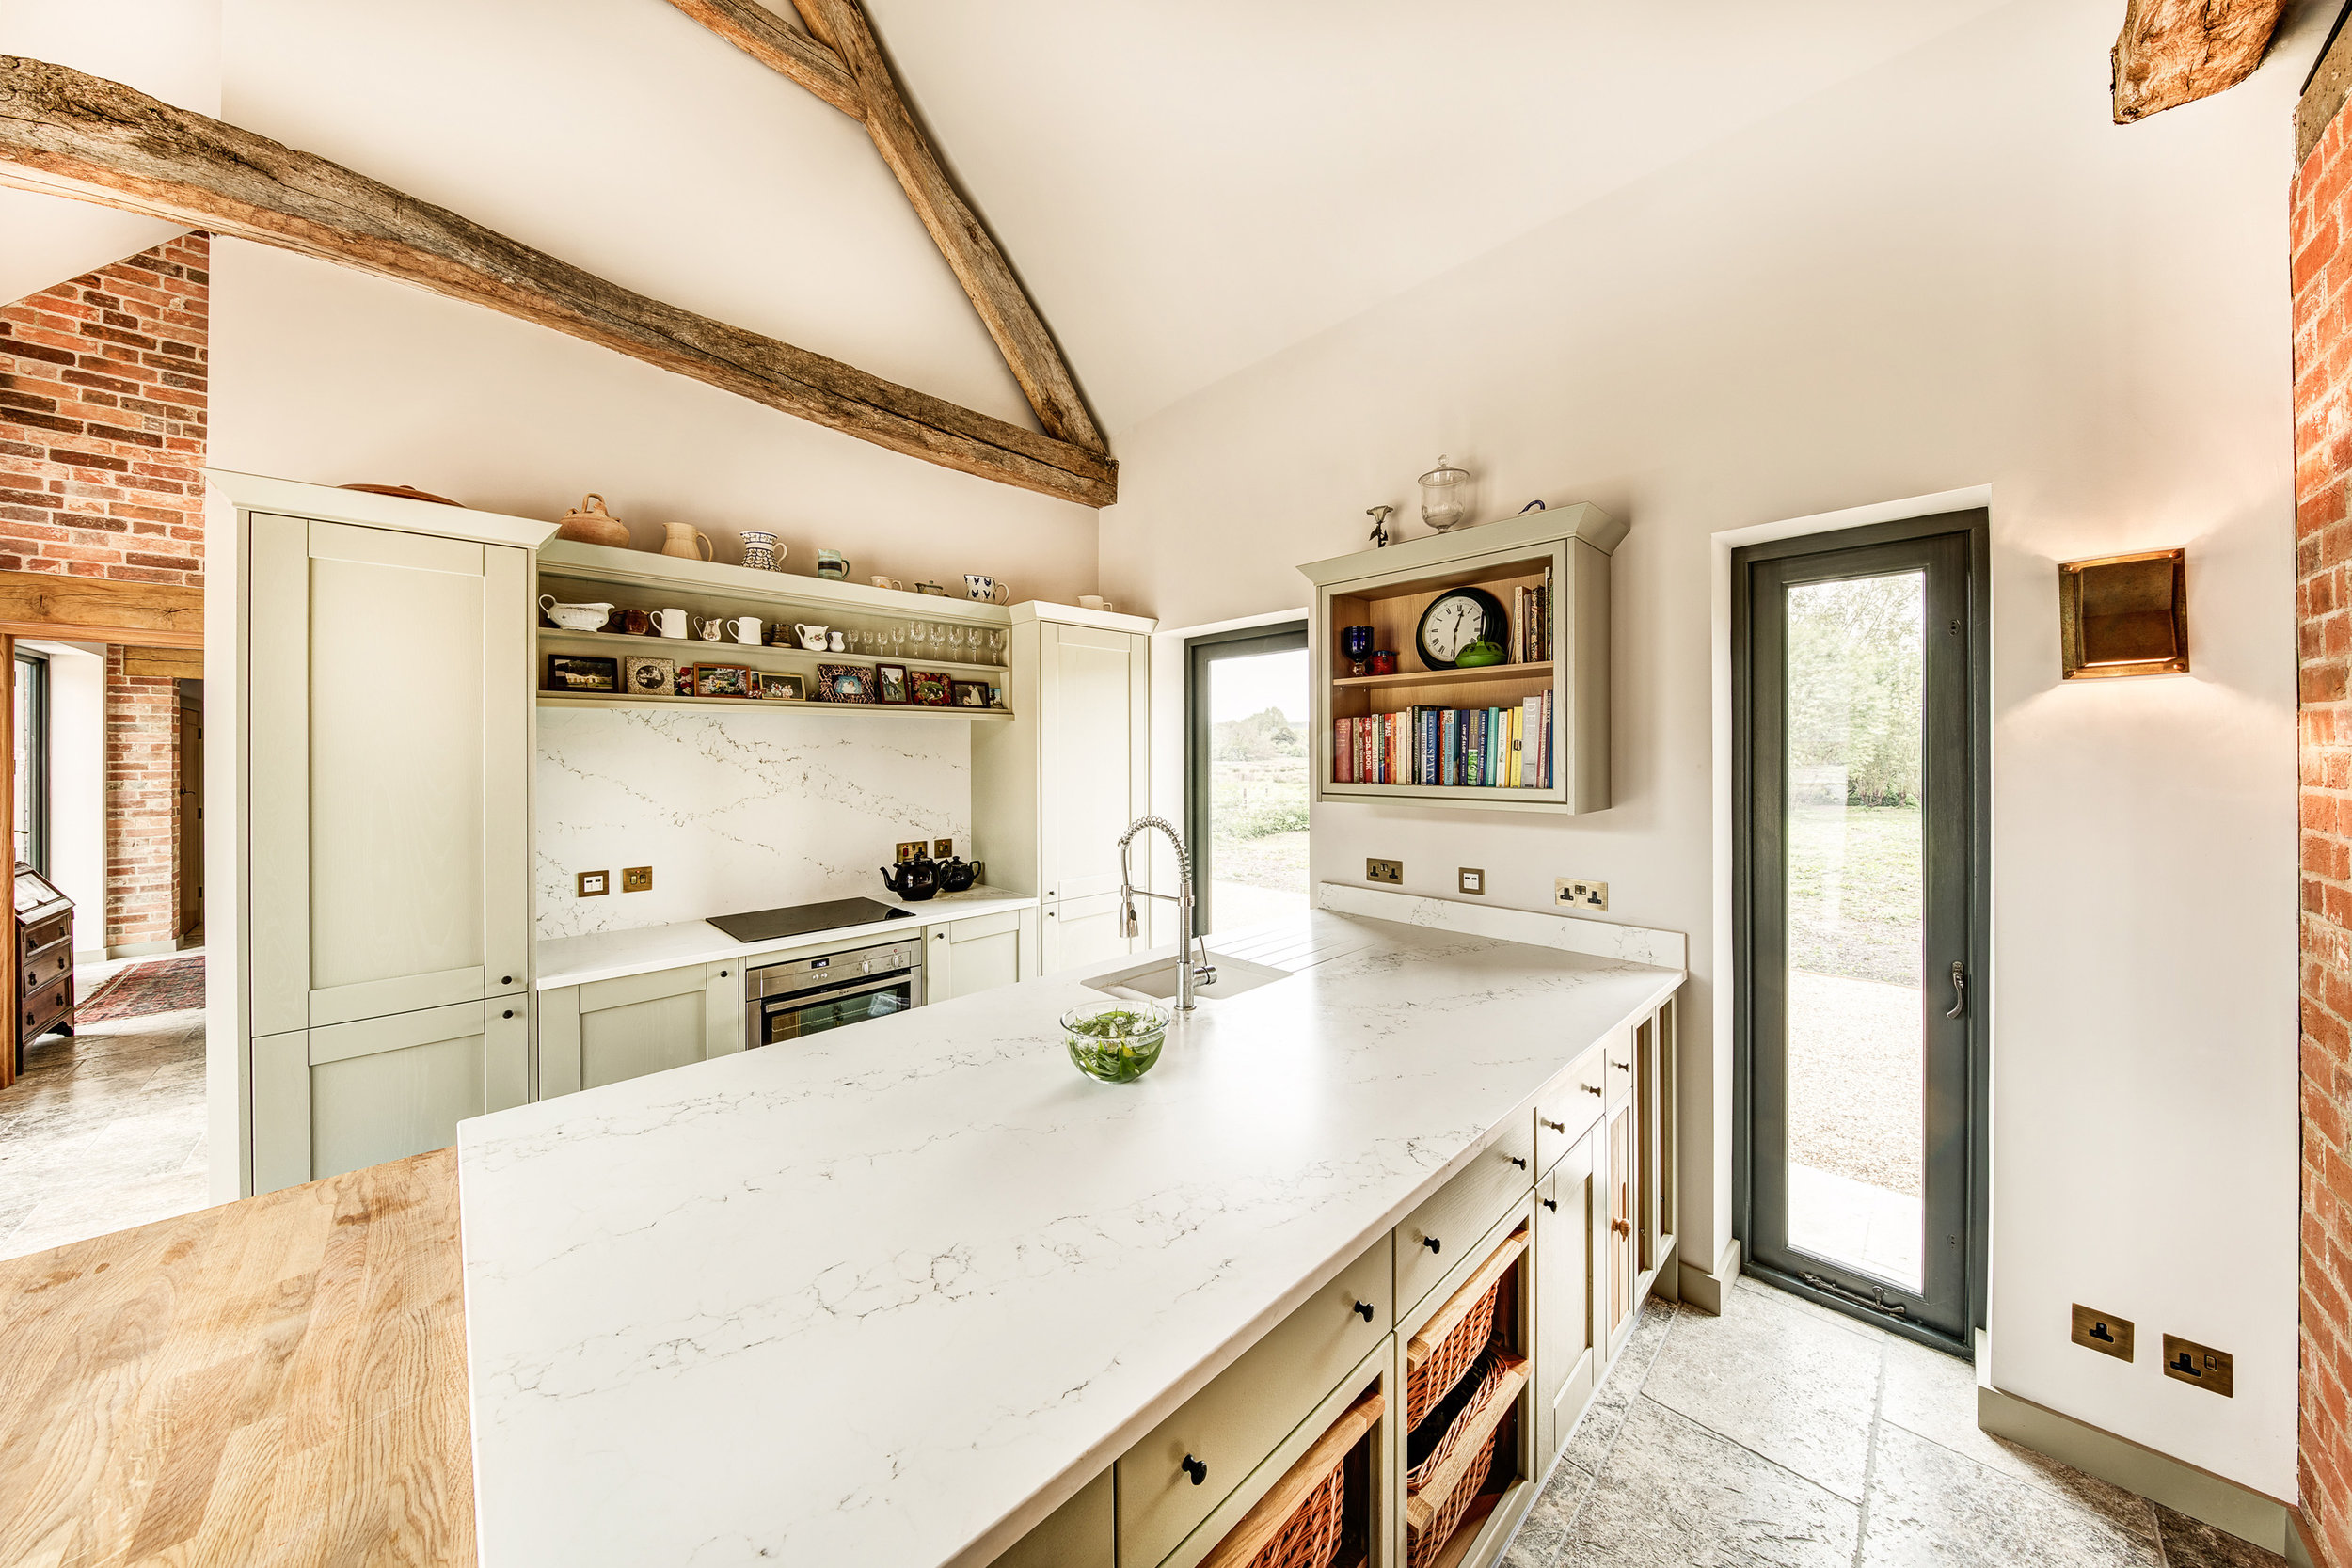 Pell-Stevens-Architects-Snows-barn-kitchen-conversion.jpg